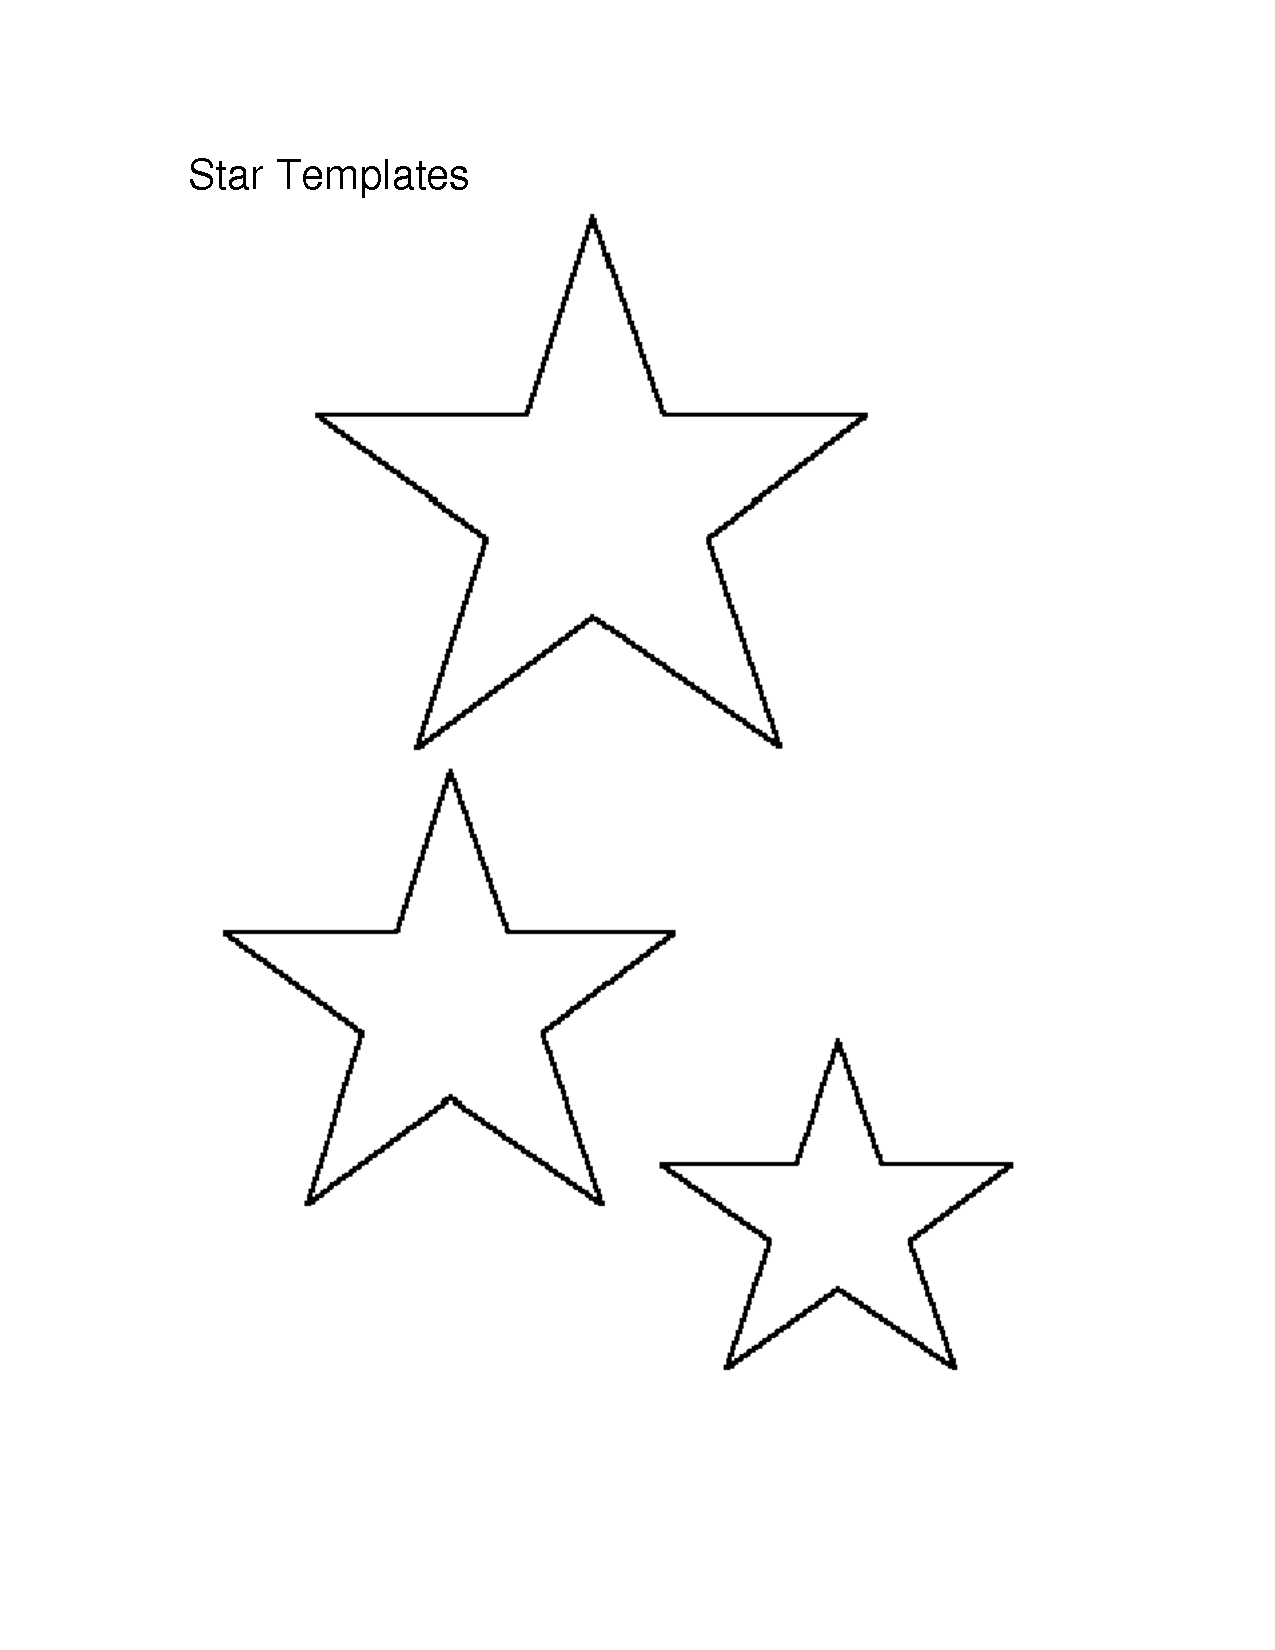 6 Images of Small Star Templates Printable Free